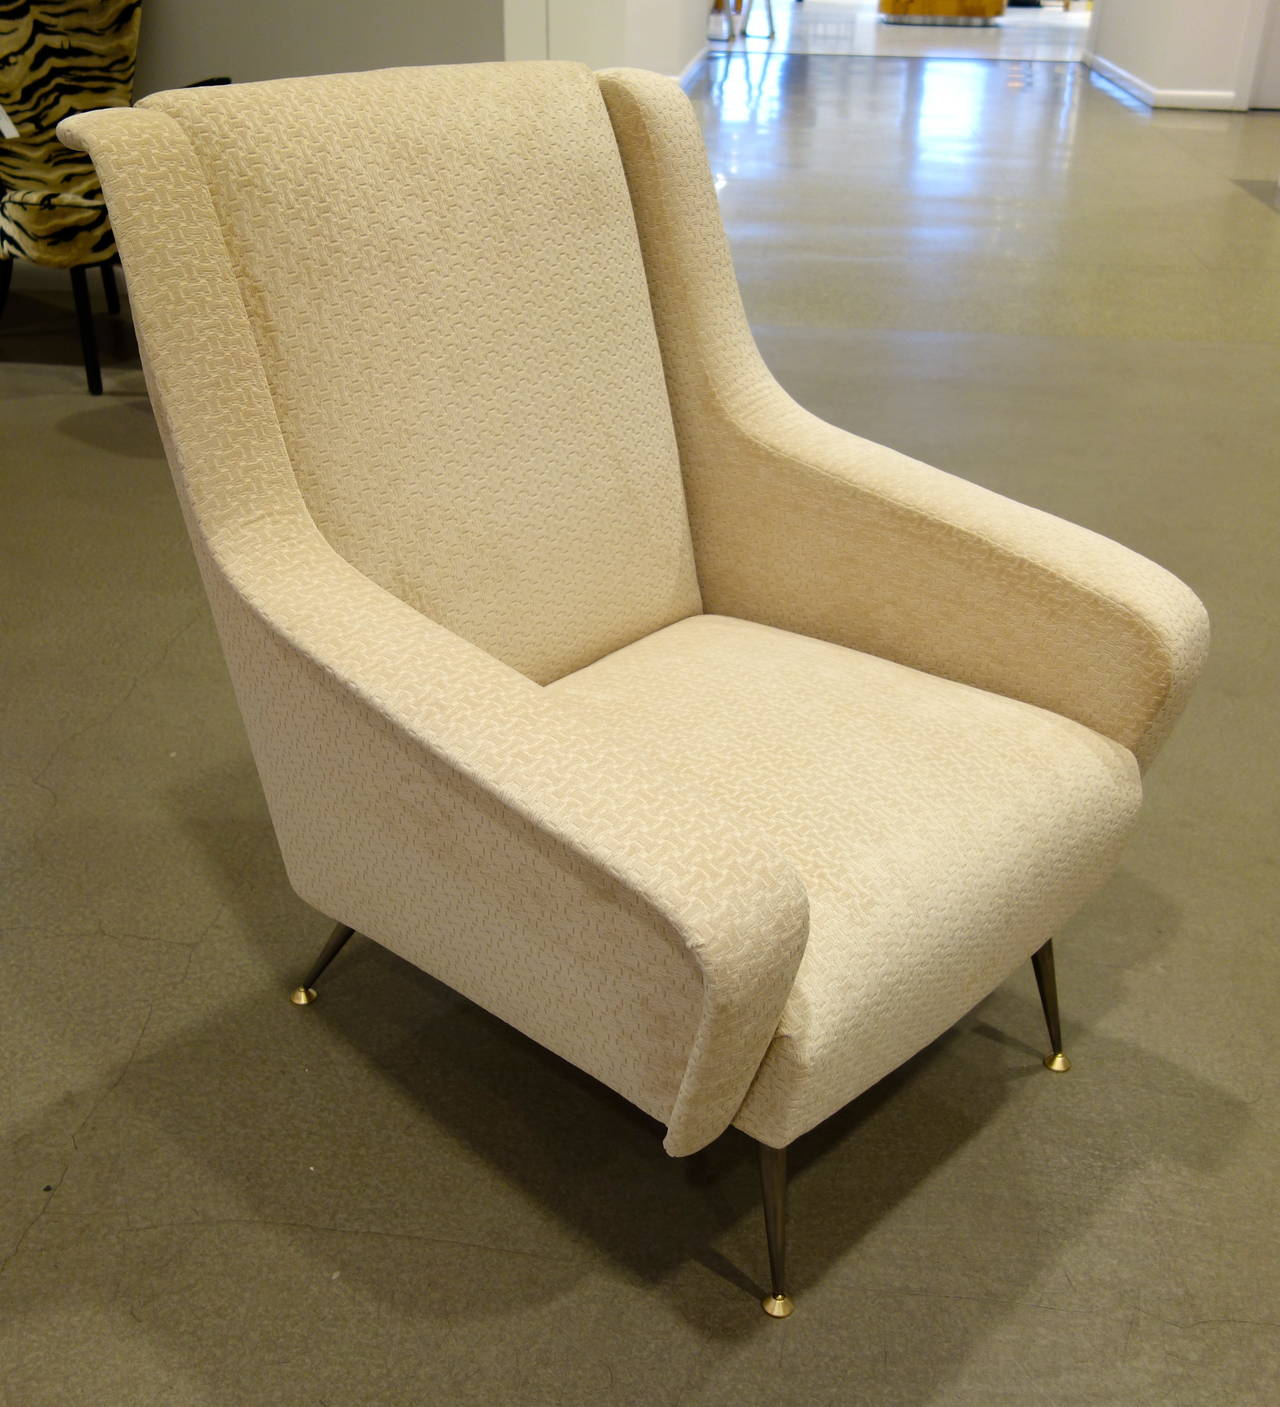 Pair of Mid-Century Modern Italian Sculptural Lounge Chairs or Armchairs In Excellent Condition For Sale In New York, NY